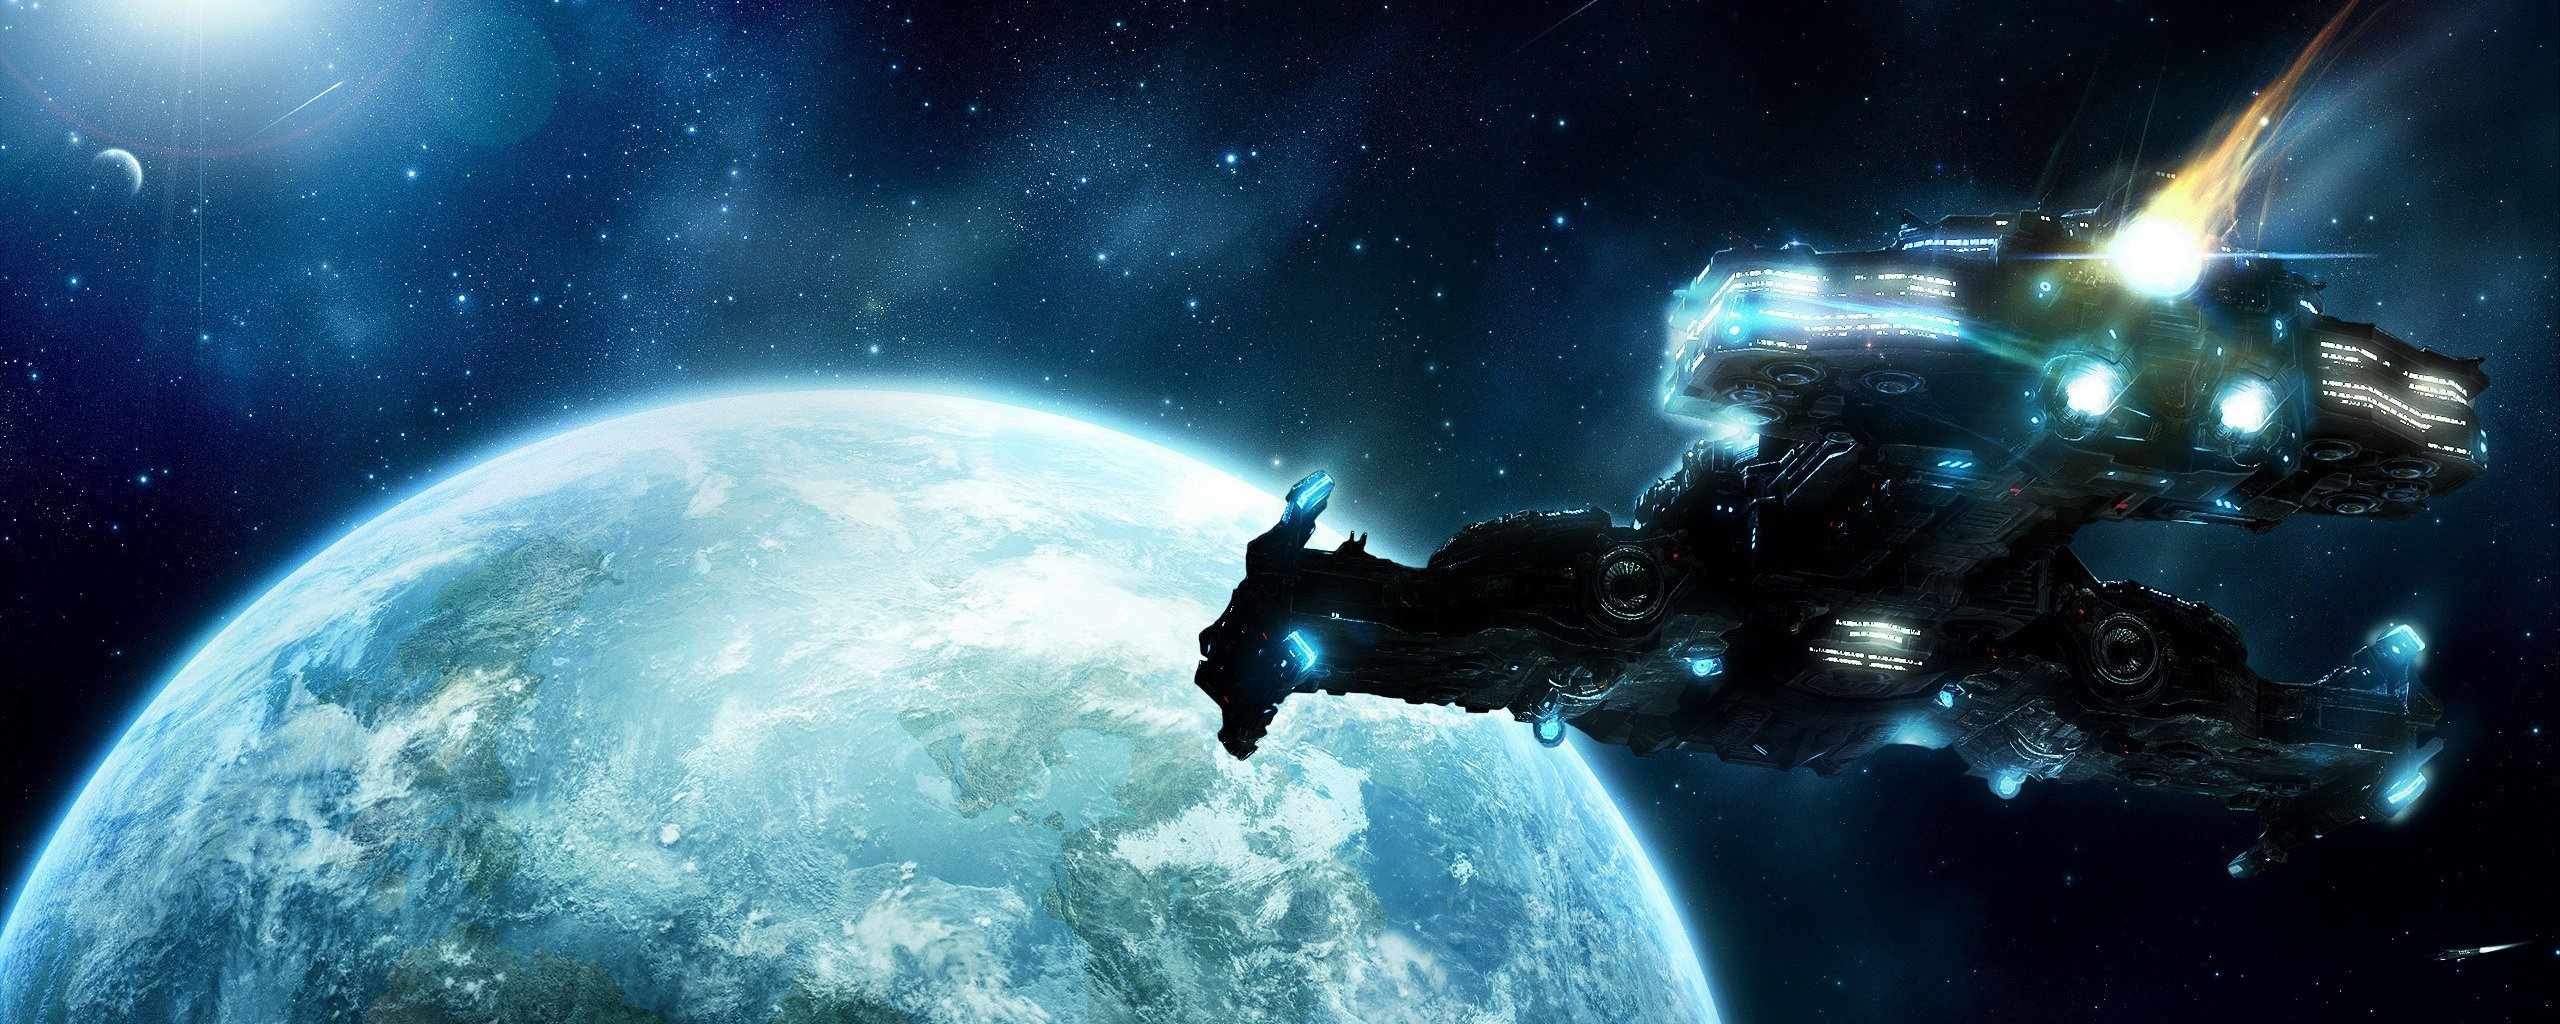 Dual Monitor Starcraft 2 Wallpapers Hd Backgrounds